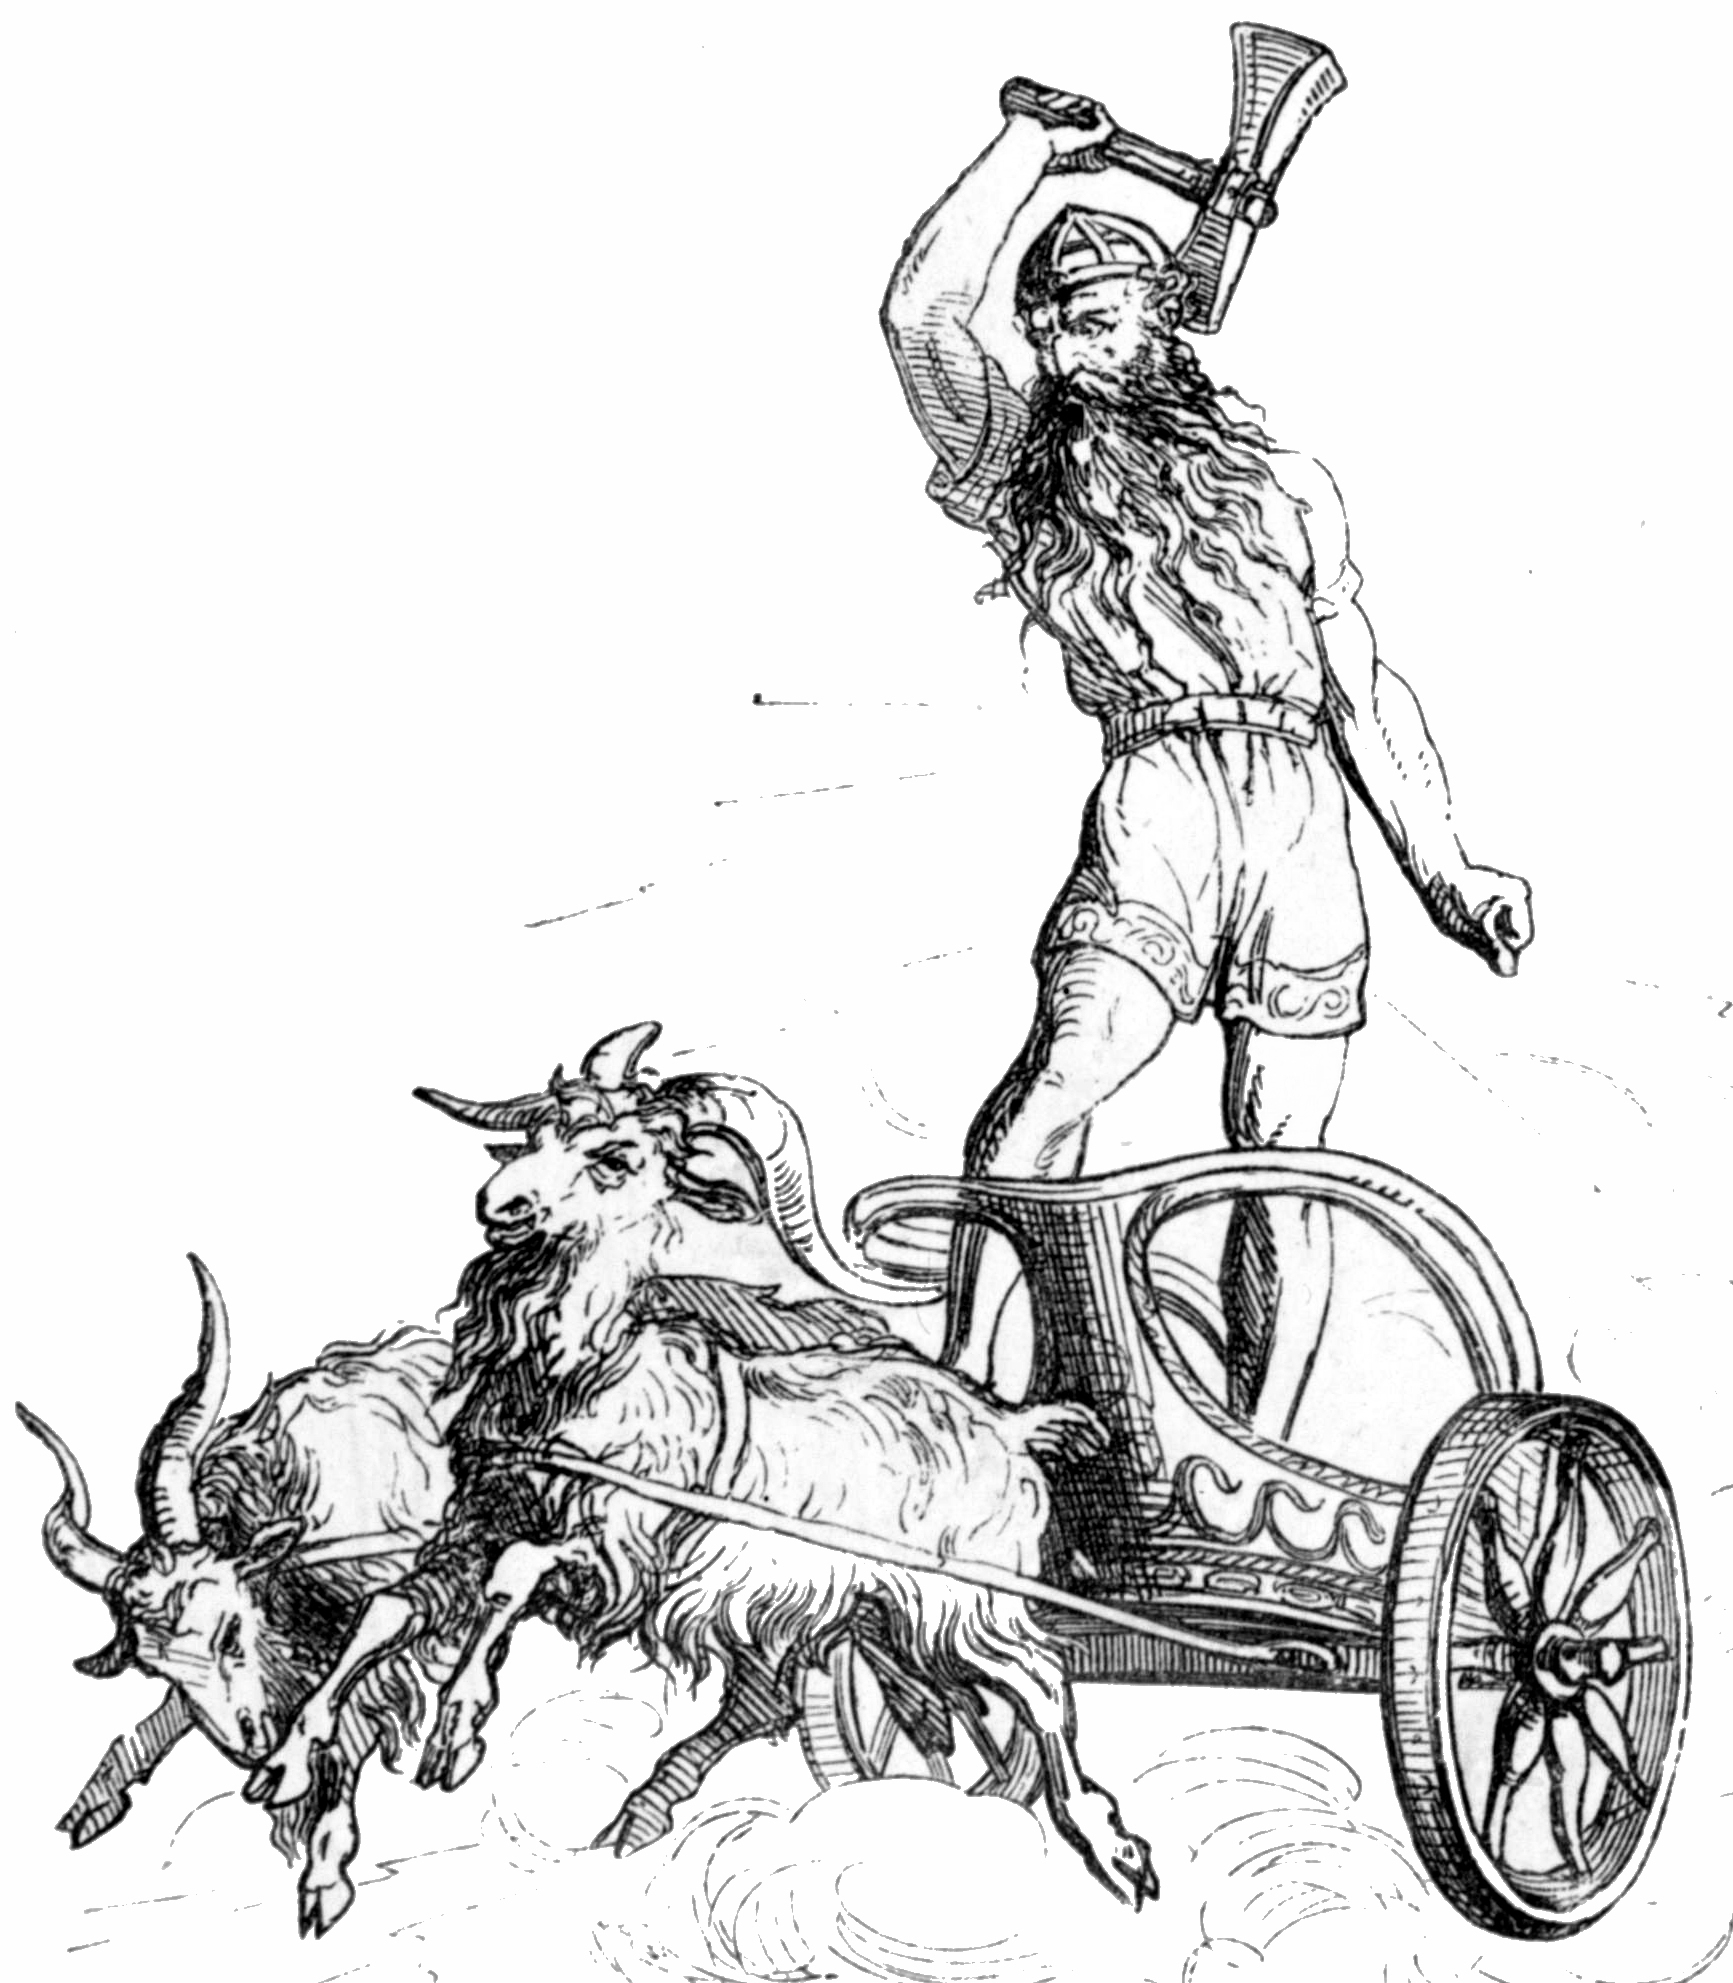 1865-thor_in_his_chariot-ludwig_pietsch-1824-191111